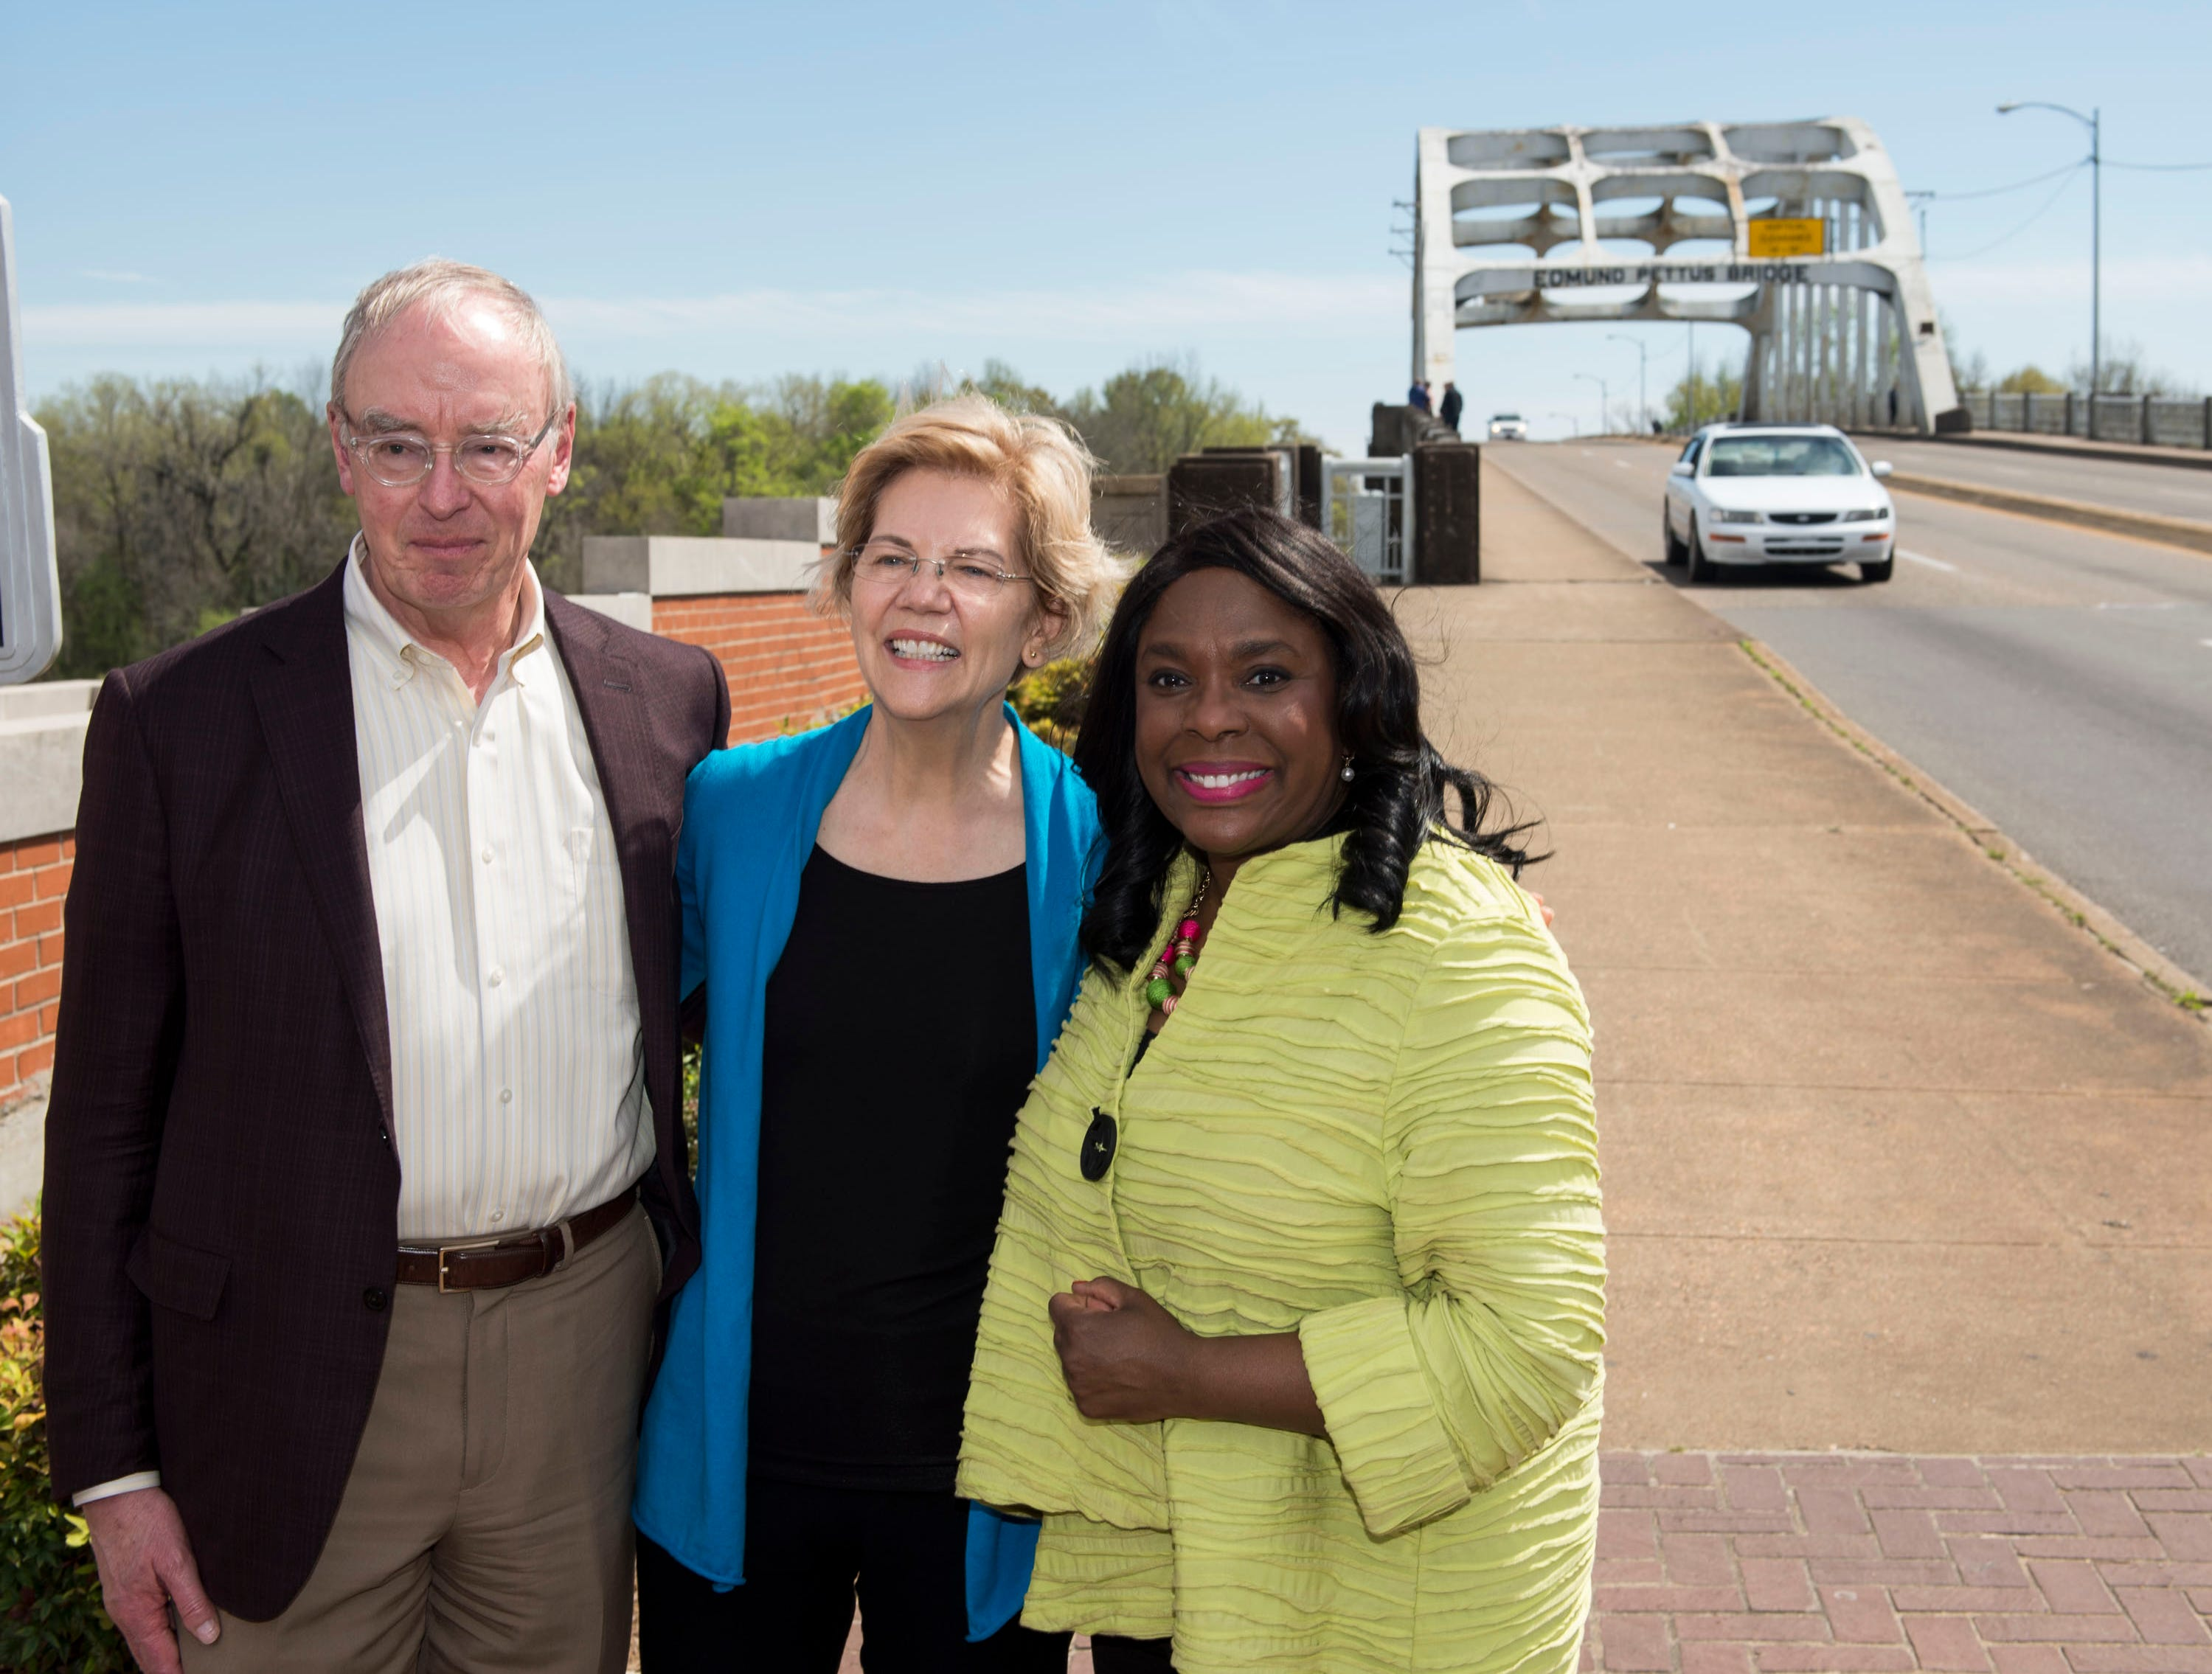 Sen. Elizabeth Warren poses with her husband, Bruce Mann, left, and Rep. Terri Sewell, left, in front of the Edmund Pettus Bridge at Brown Chapel AME Church in Selma, Ala., on Tuesday, March 19, 2019.